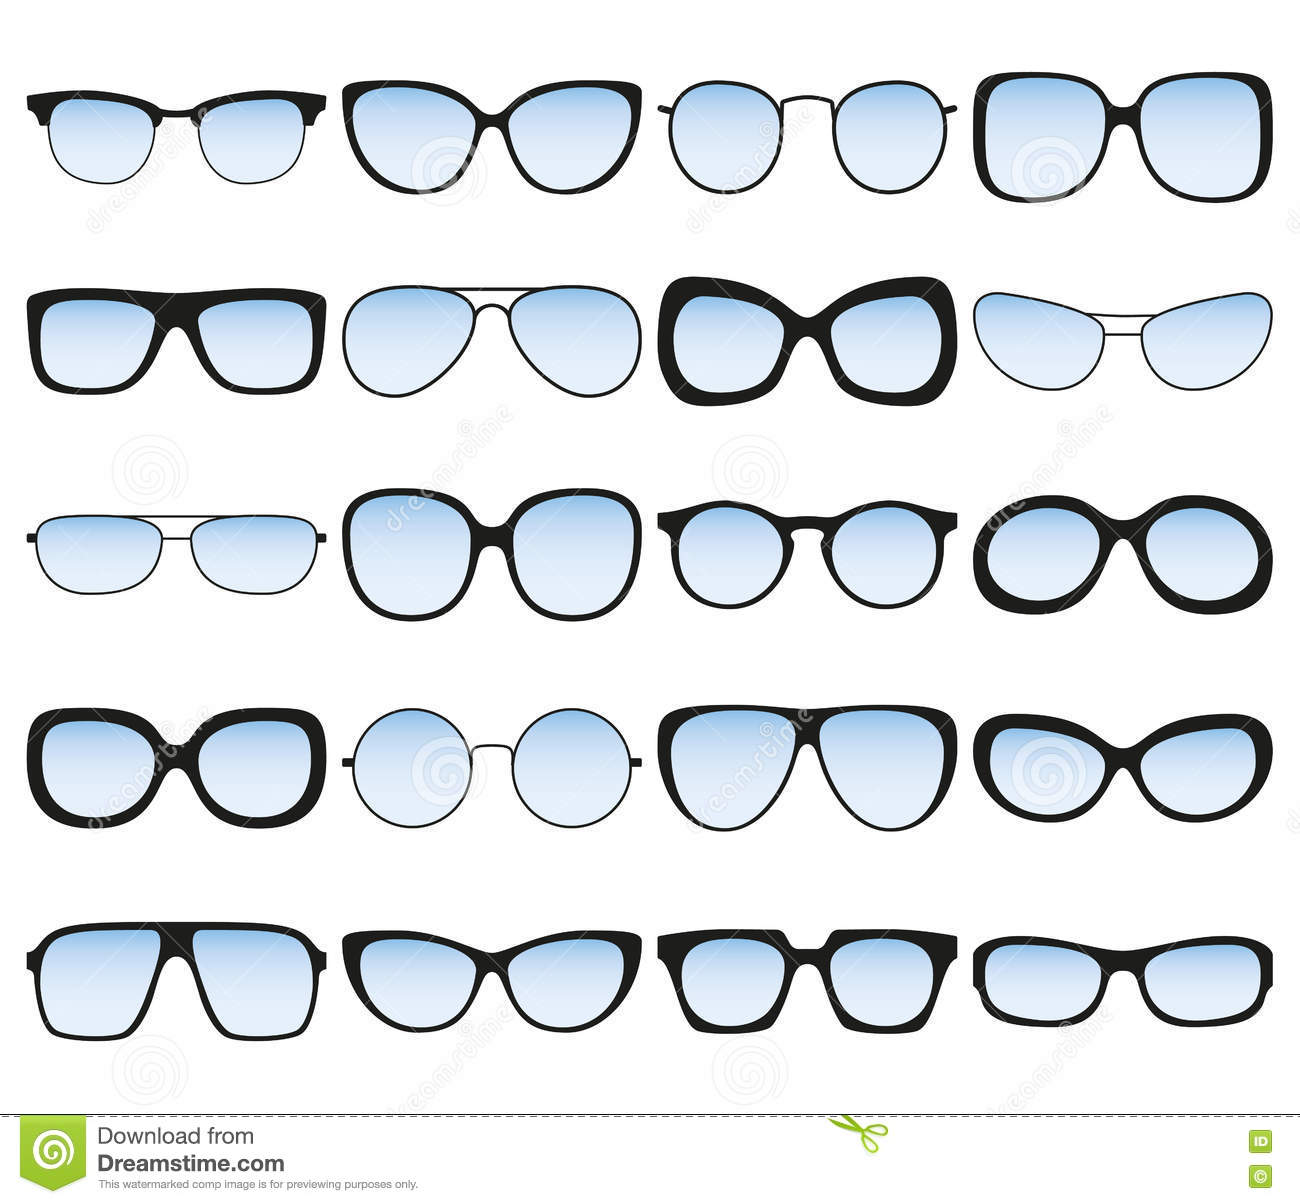 Different Eyeglass Frame Shapes : Sunglasses Icon Set. Different Spectacle Frames And Shapes ...